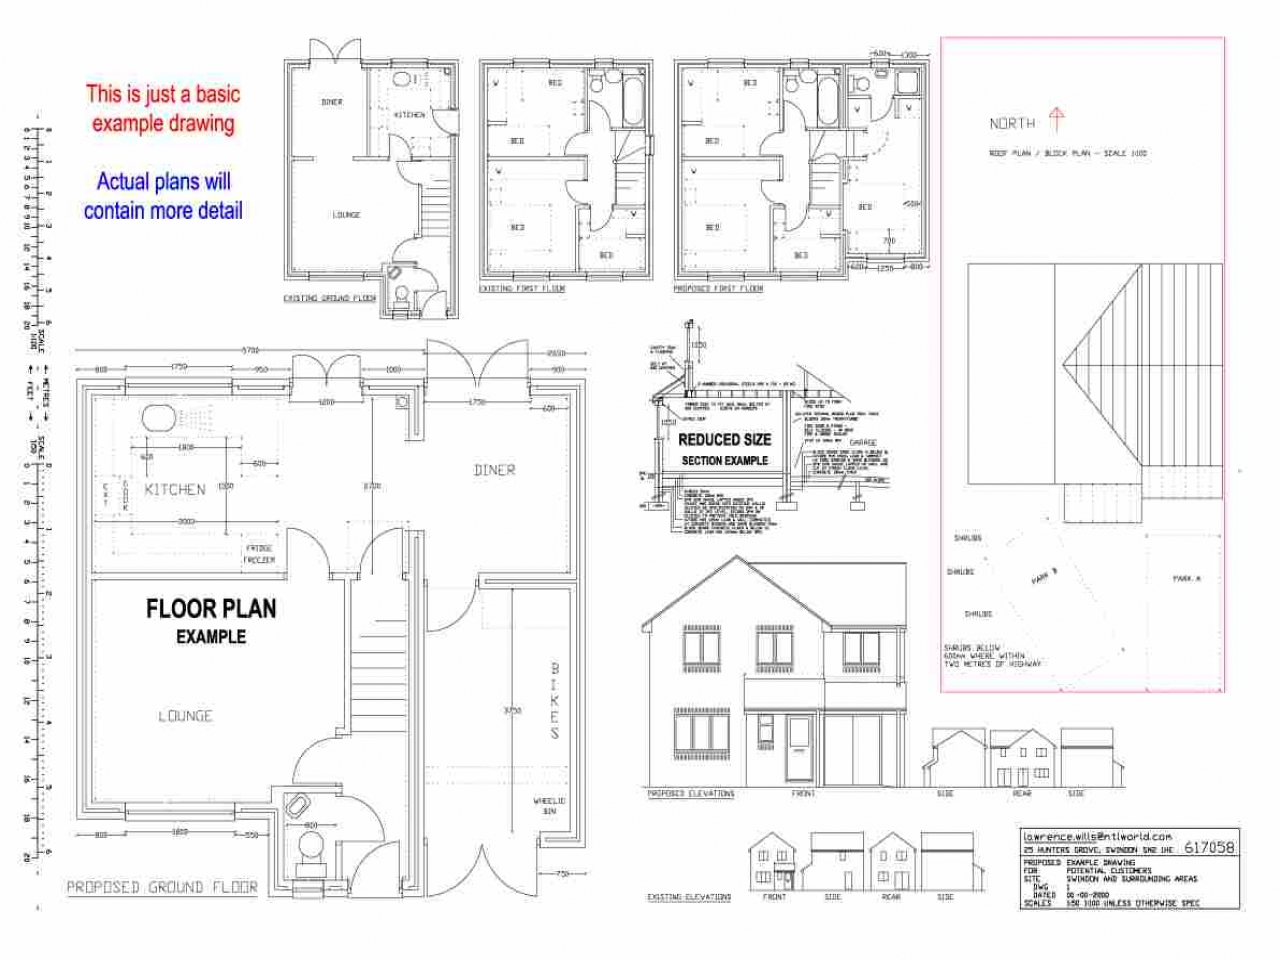 Simple building plans building drawing house plans home for Cost to draw house plans